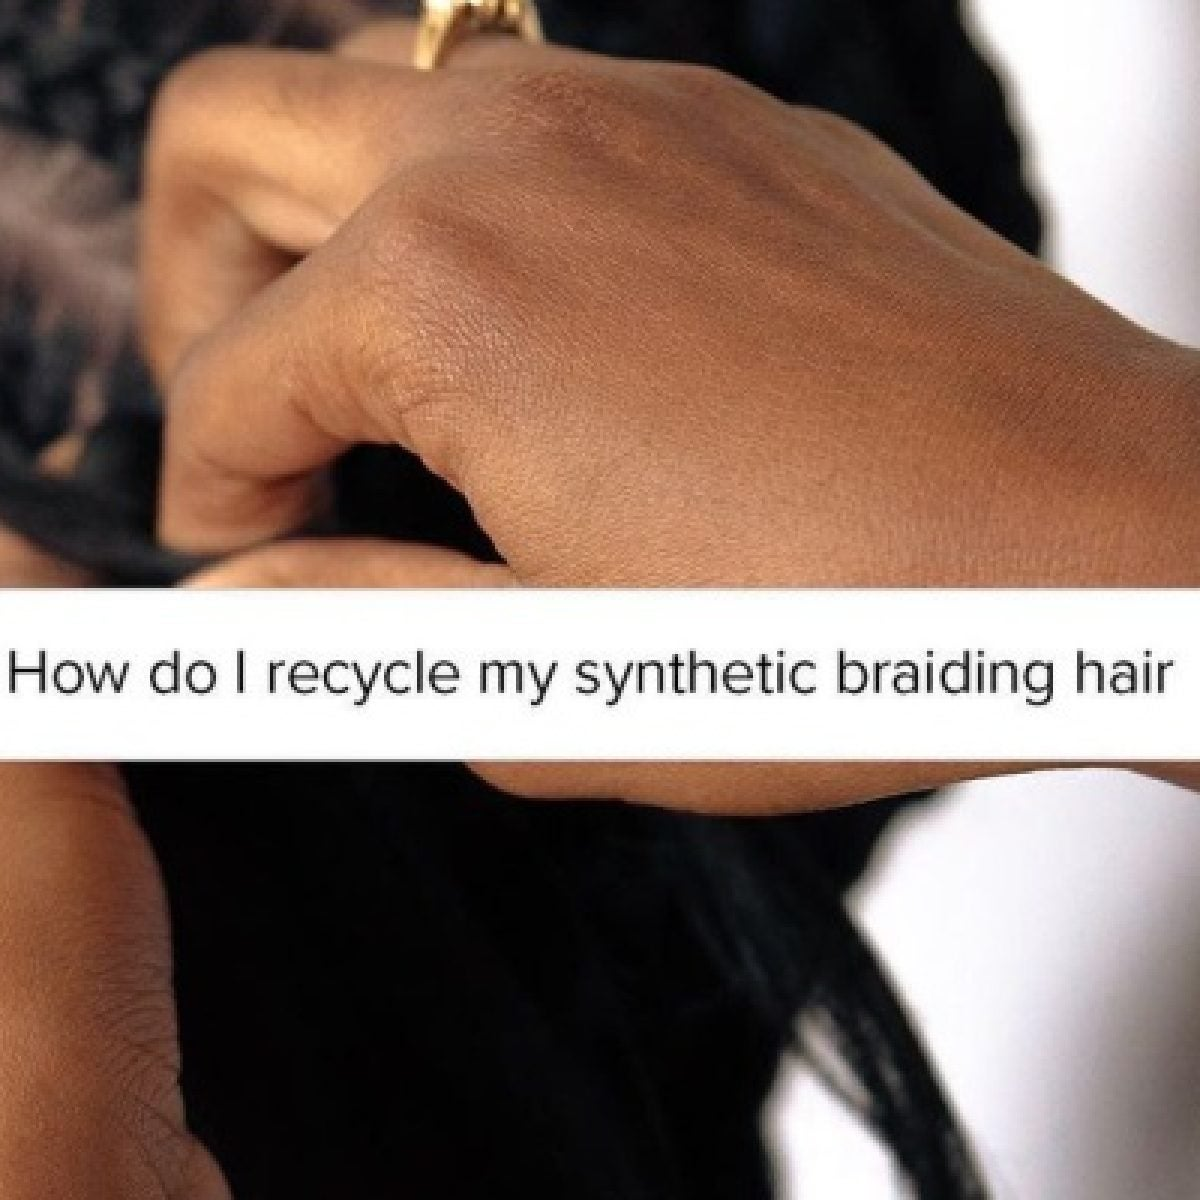 This Synthetic Braiding Hair Is Changing The Landscape For Eco-Friendly Protective Styles